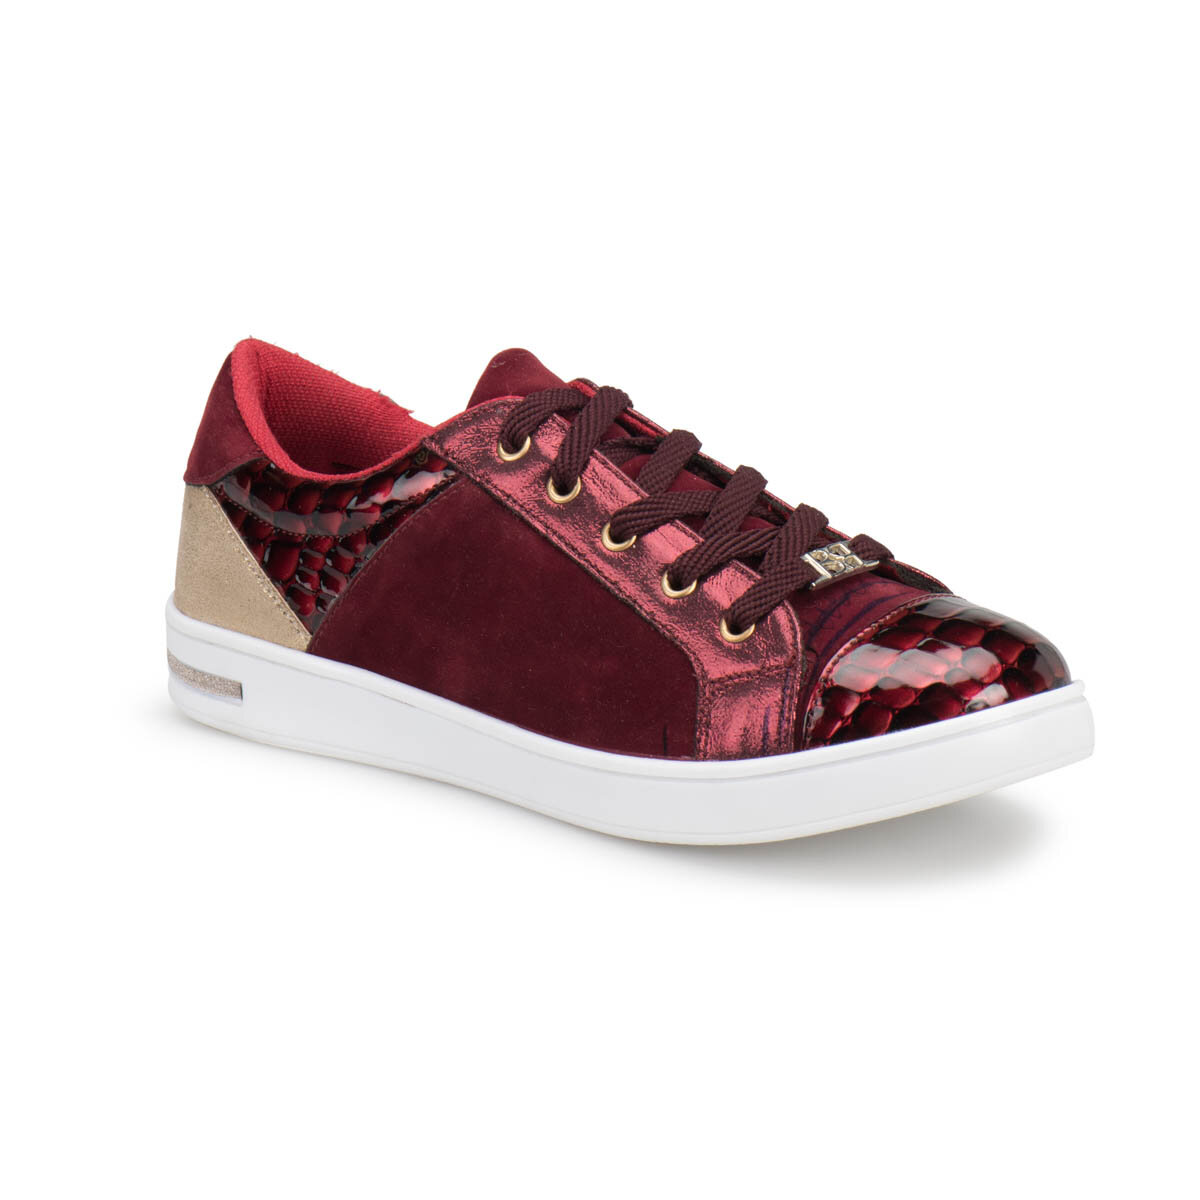 FLO Z306 Burgundy Women 'S Sneaker Shoes BUTIGO title=